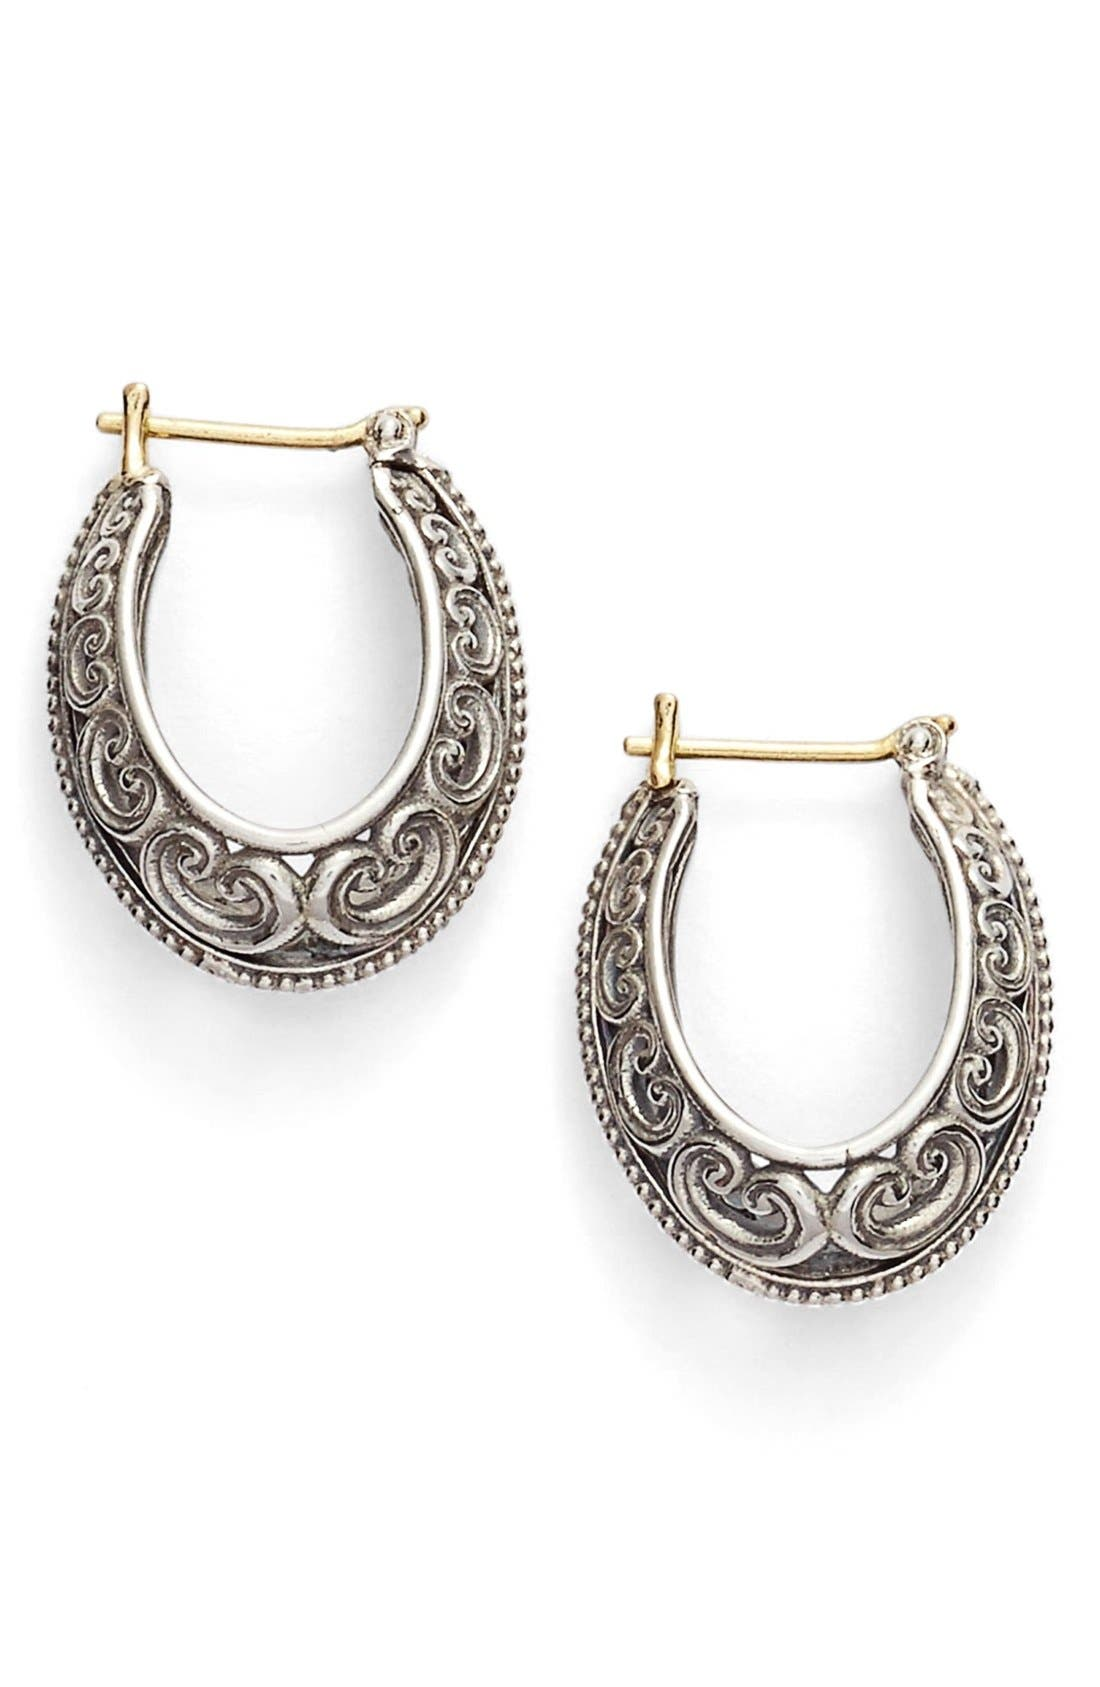 Konstantino 'Penelope' Filigree Hoop Earrings